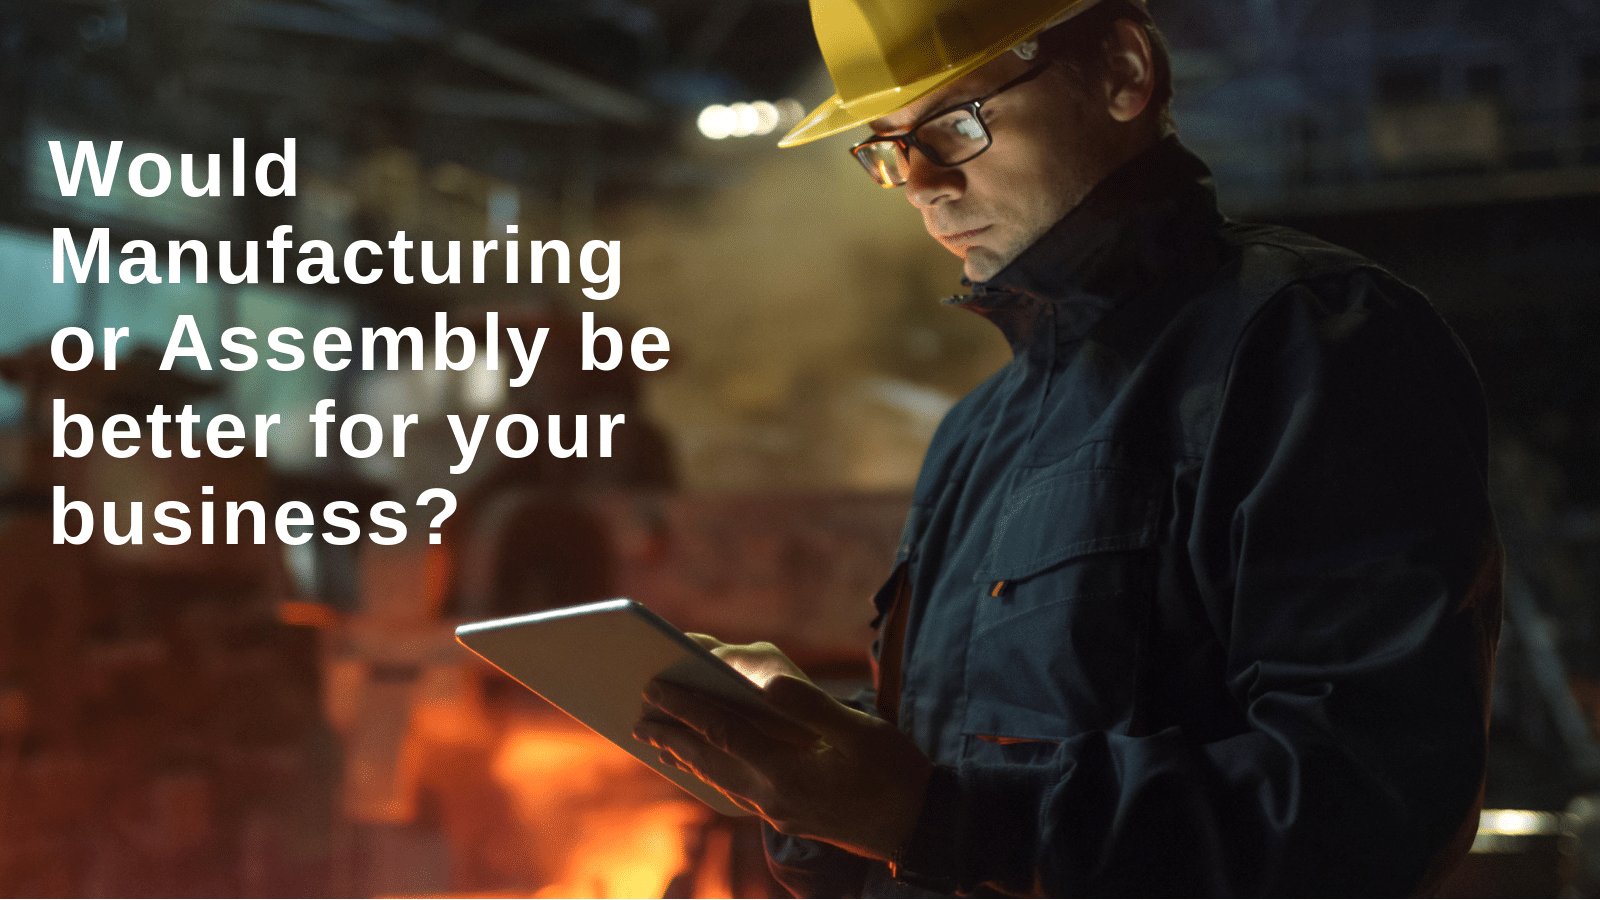 Would Manufacturing or Assembly be better for your business?